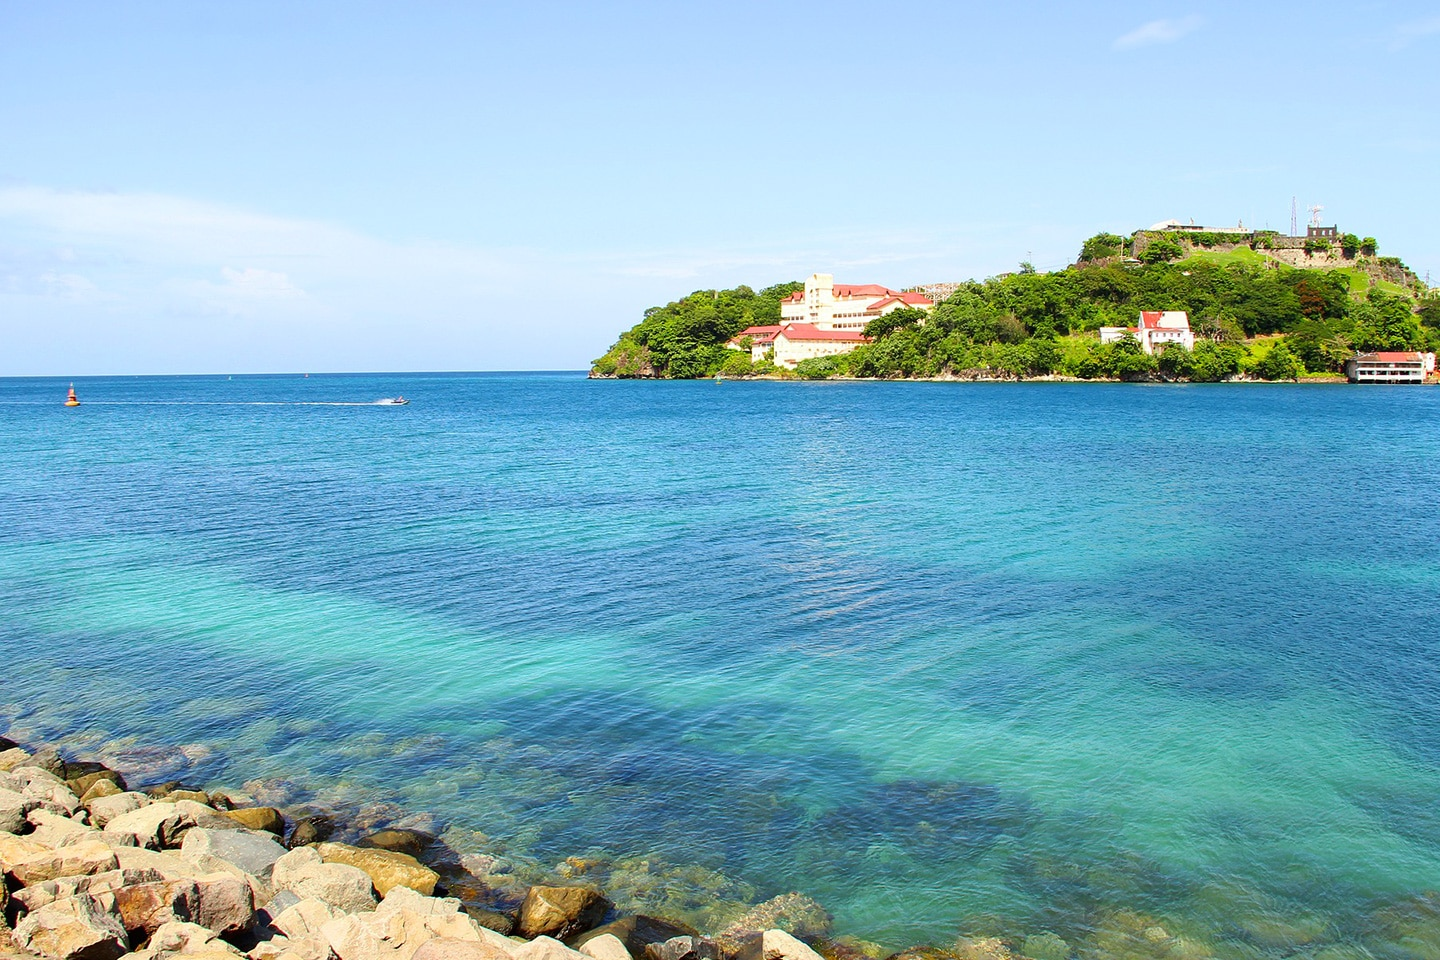 Grenada - Dry season weather